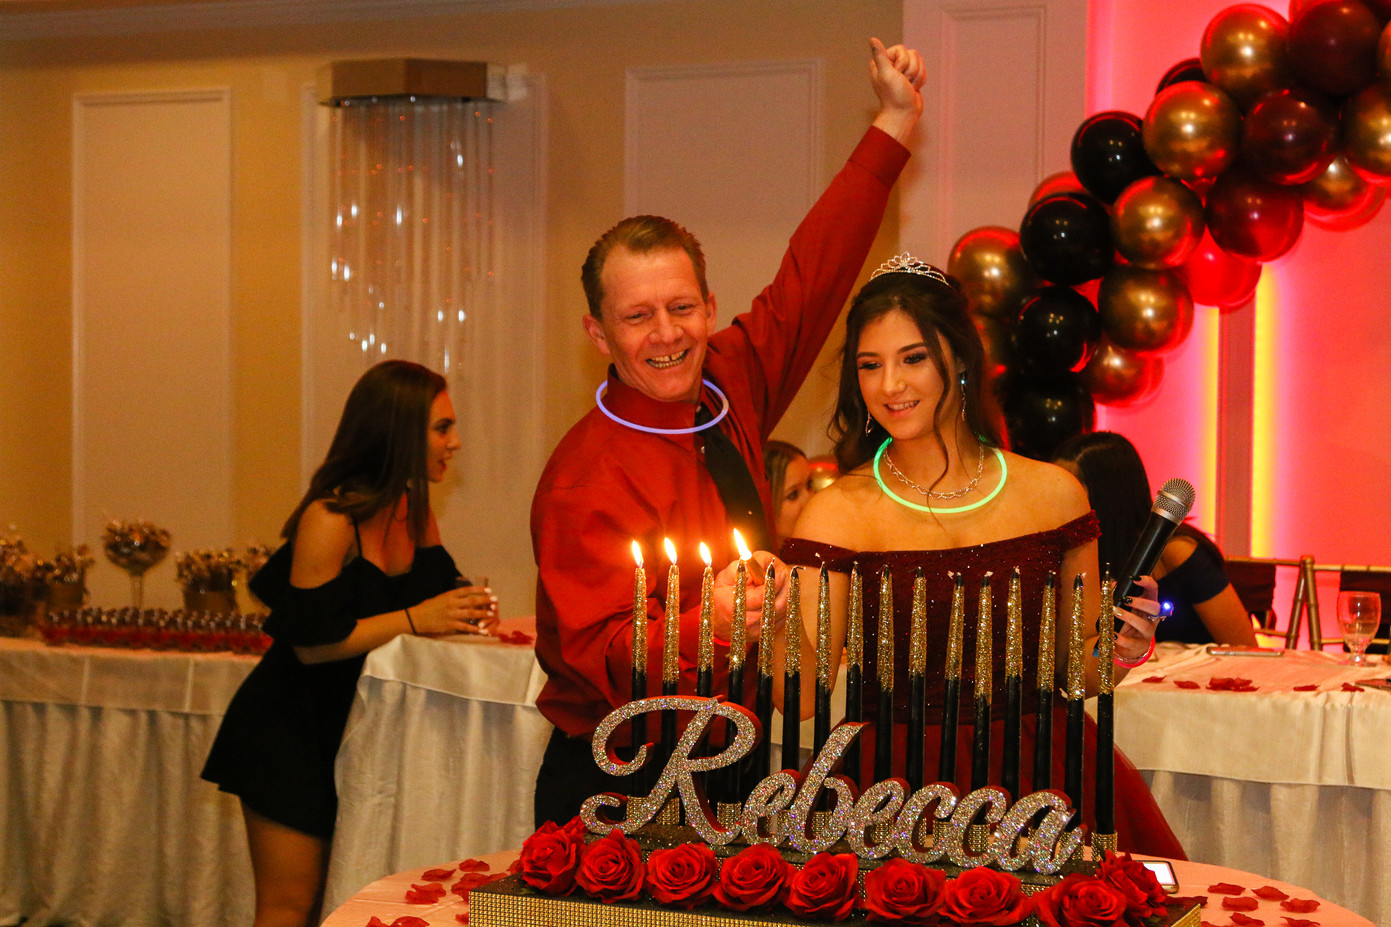 Rebecca-Birthday-Party-Photograph.jpg